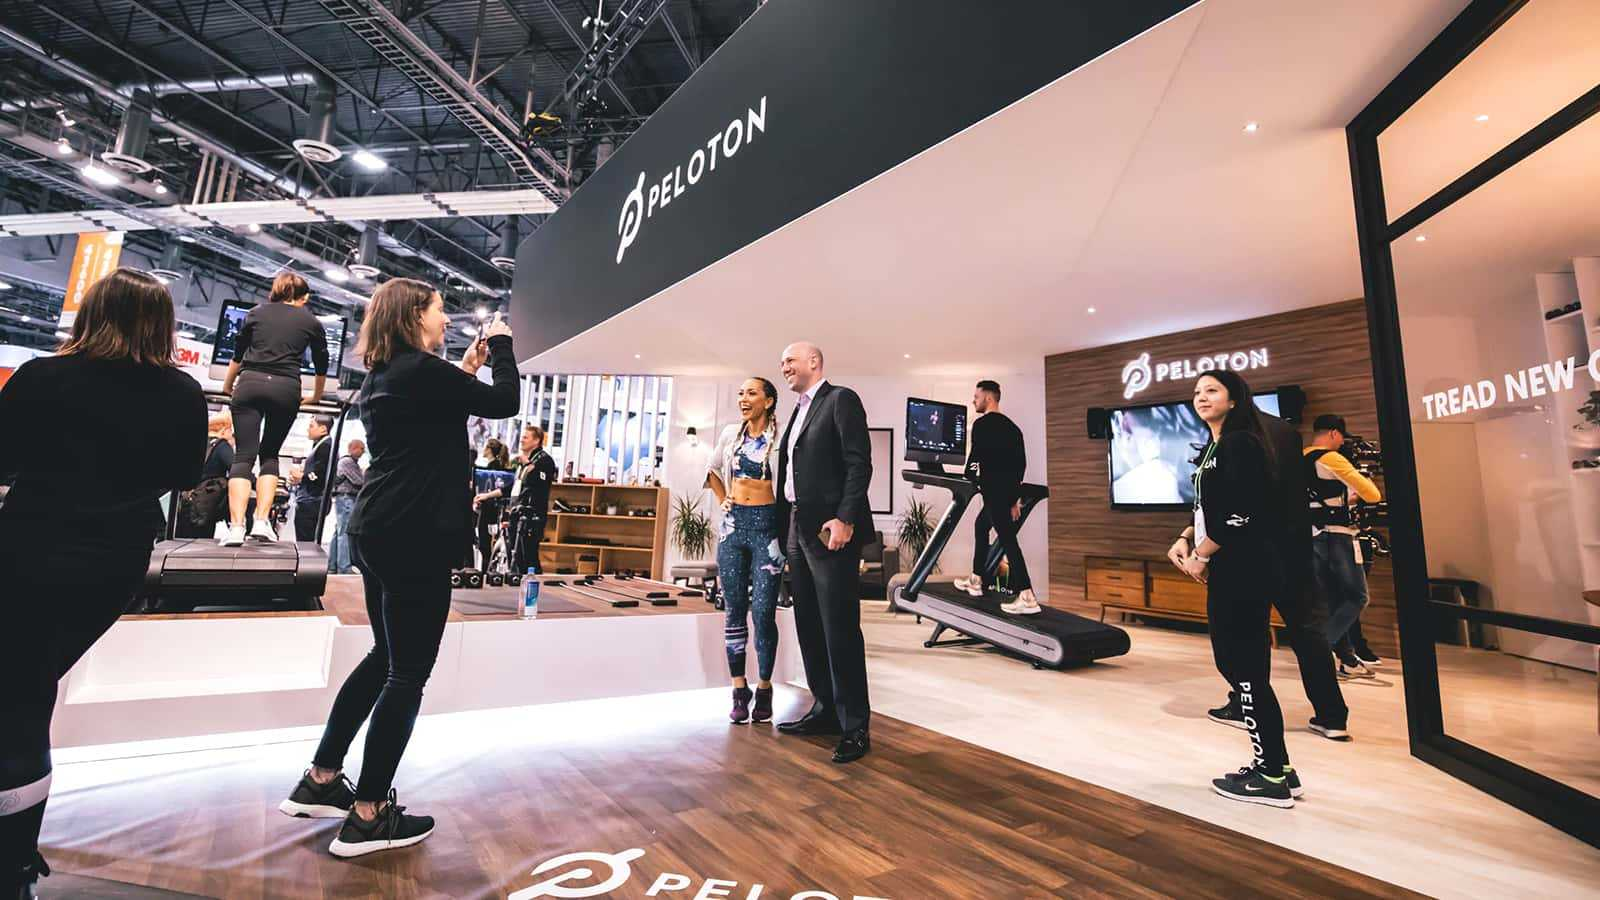 Attendees take selfies with Peloton instructors at the Peloton CES 2018 experience.